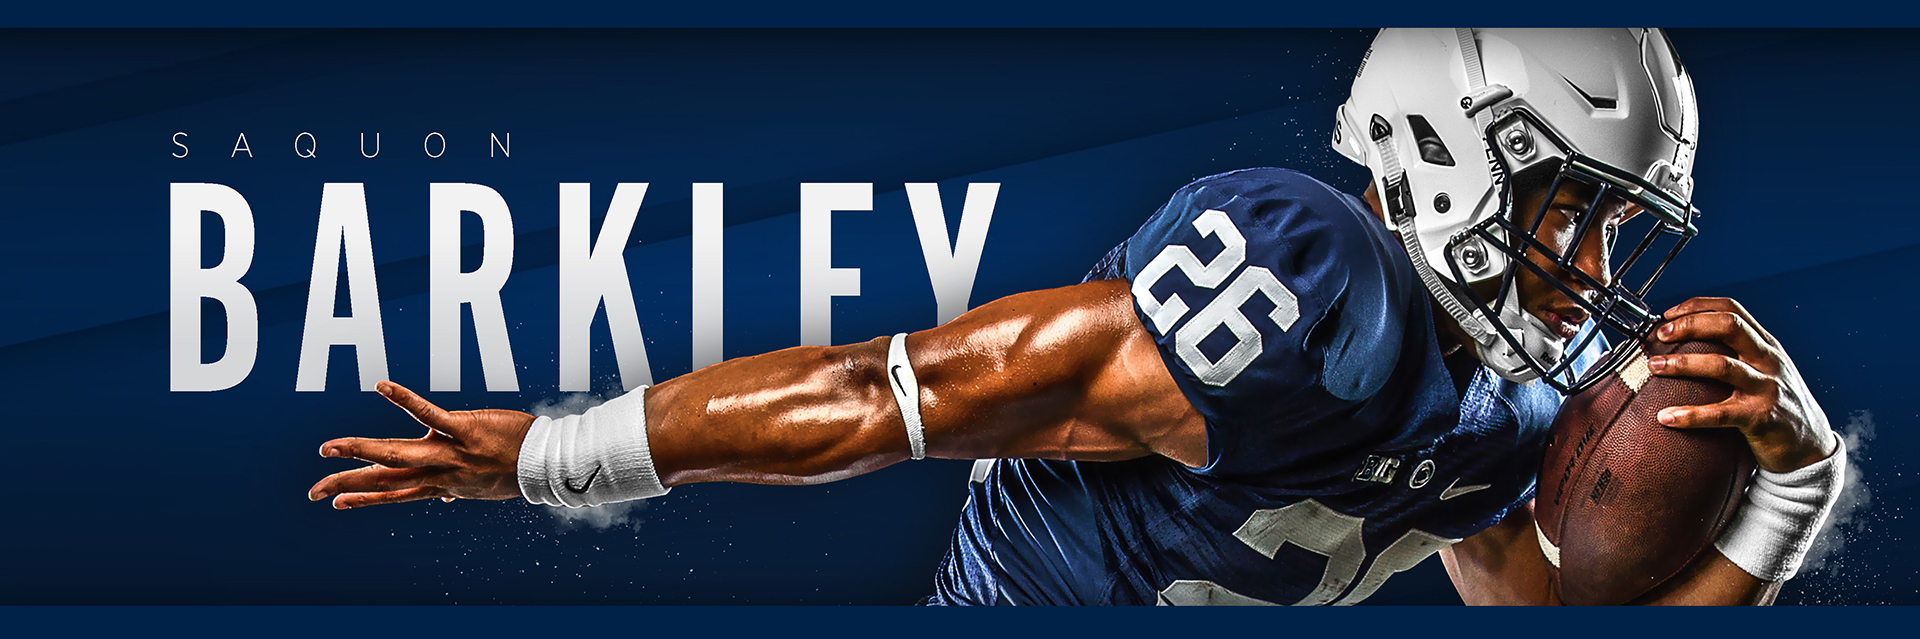 GOPSUSPORTScom Official Athletic Site of Penn State 1920x639